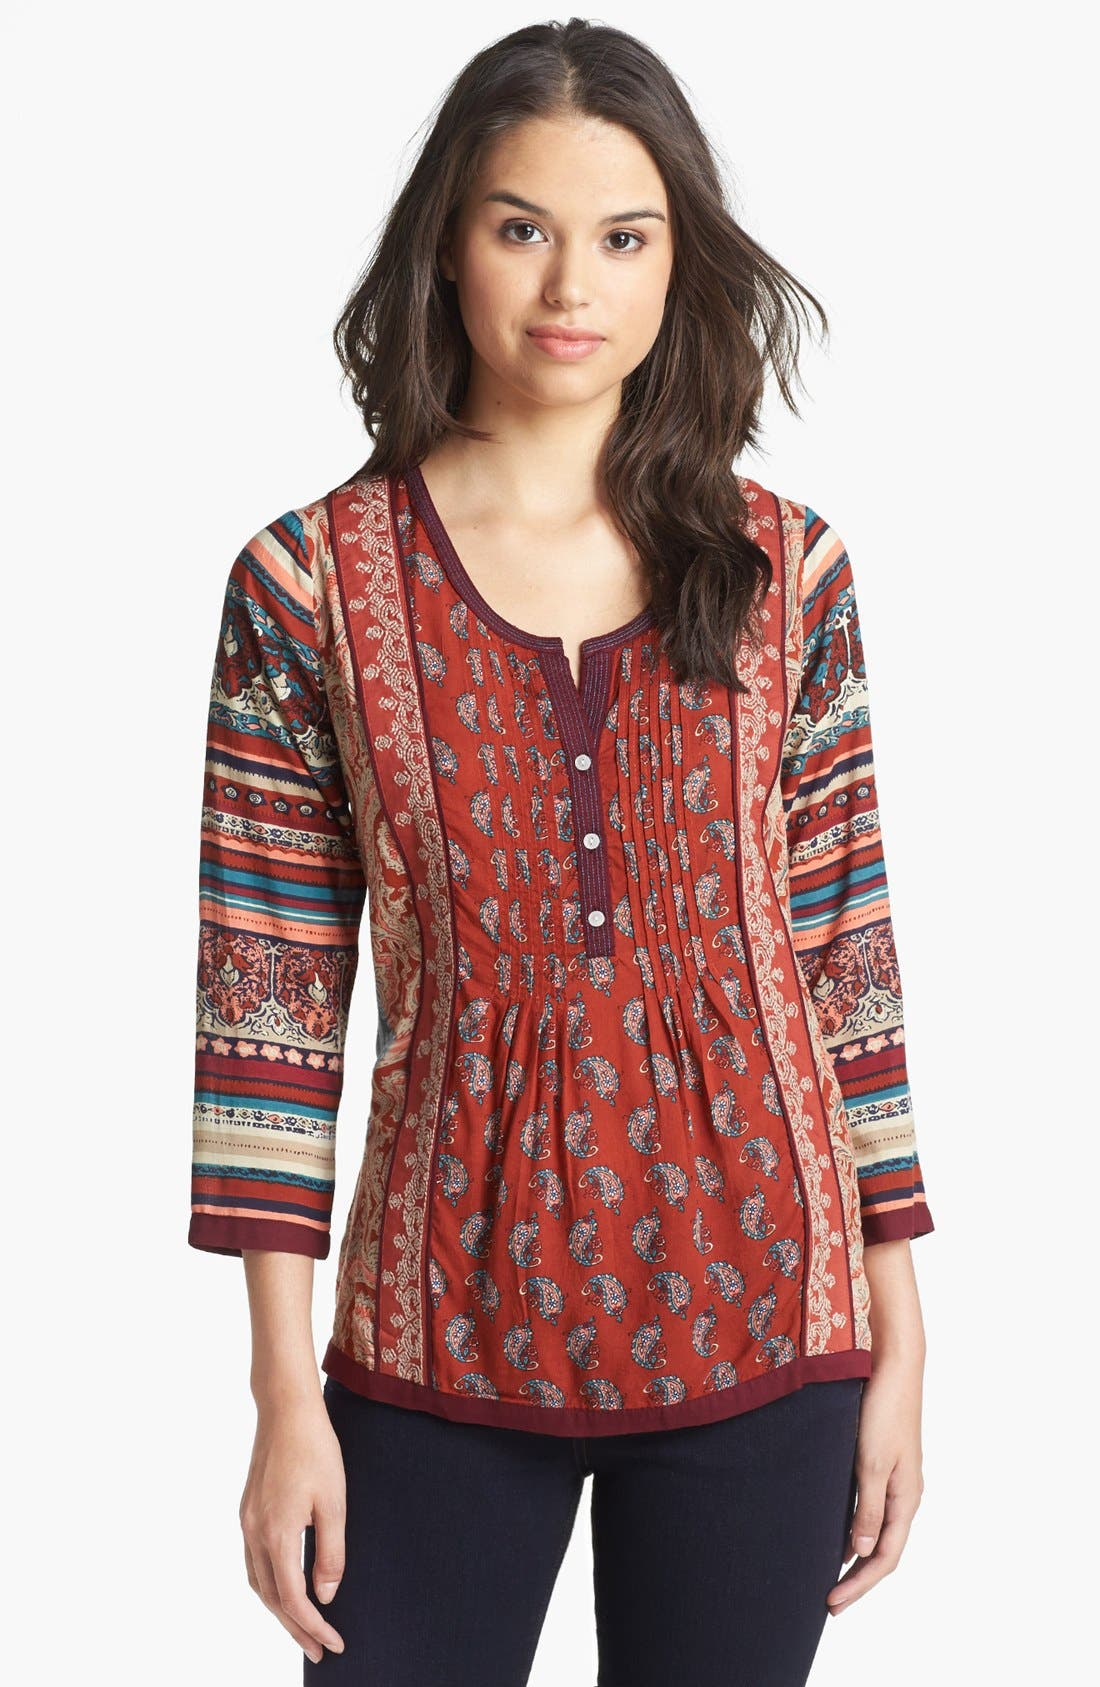 Alternate Image 1 Selected - Lucky Brand 'Annabeth' Mix Print Tunic